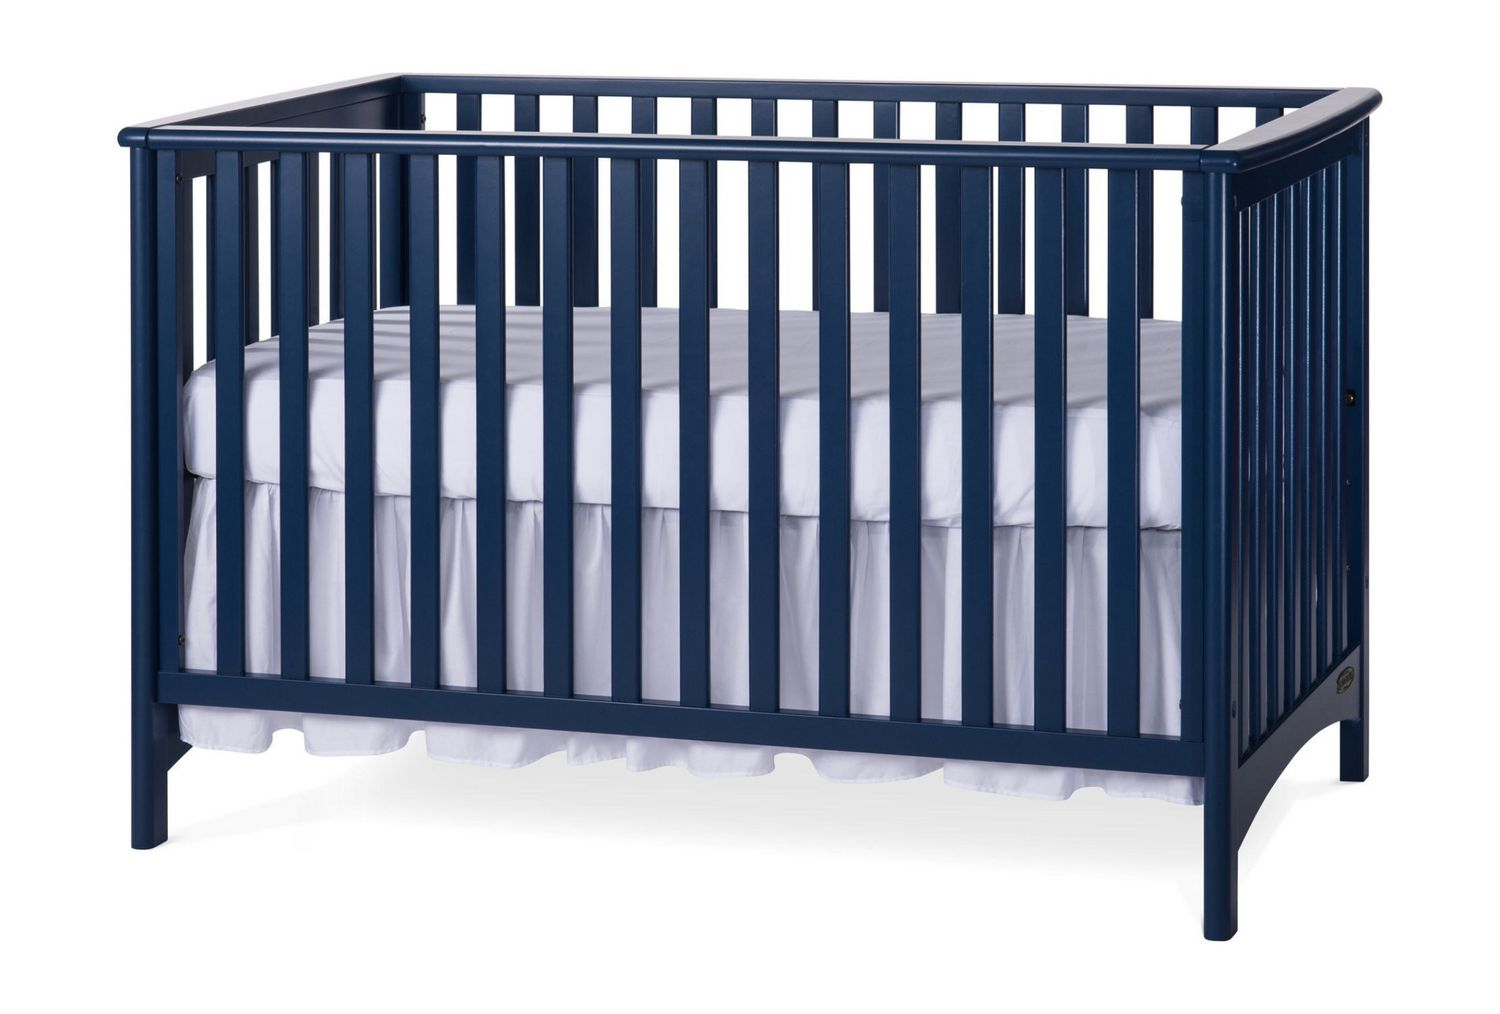 design depot crib cribs interior your sets for coat master baby factory bedding of modern furniture beautiful bedroom ideas